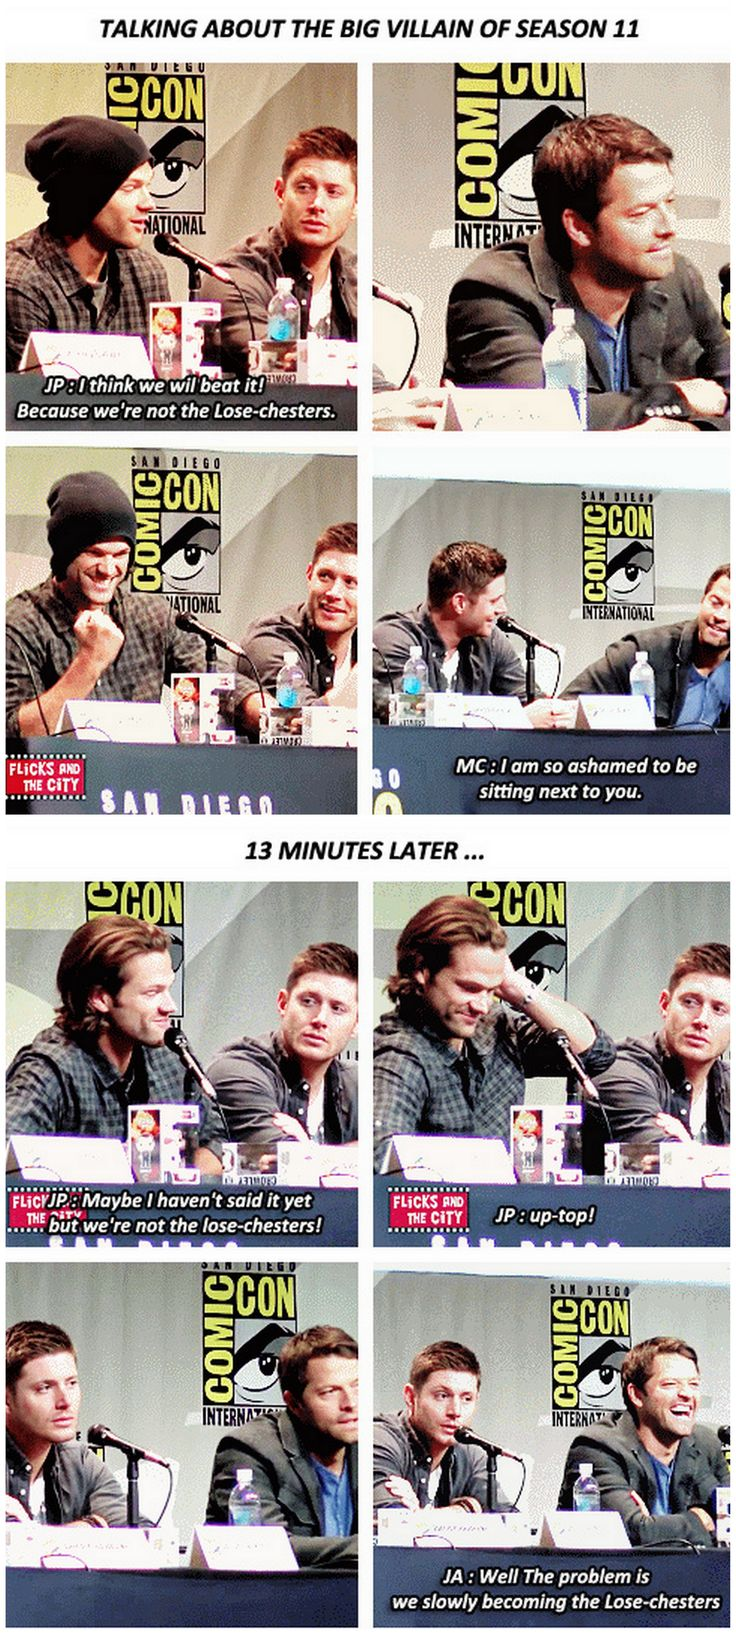 [gifset] we're not the lose-chesters! ~ Jared ... LOL ^_^ #SDCC15 || Jared Padalecki || Jensen Ackles || Misha Collins || Comic Con 2015 #SDCC